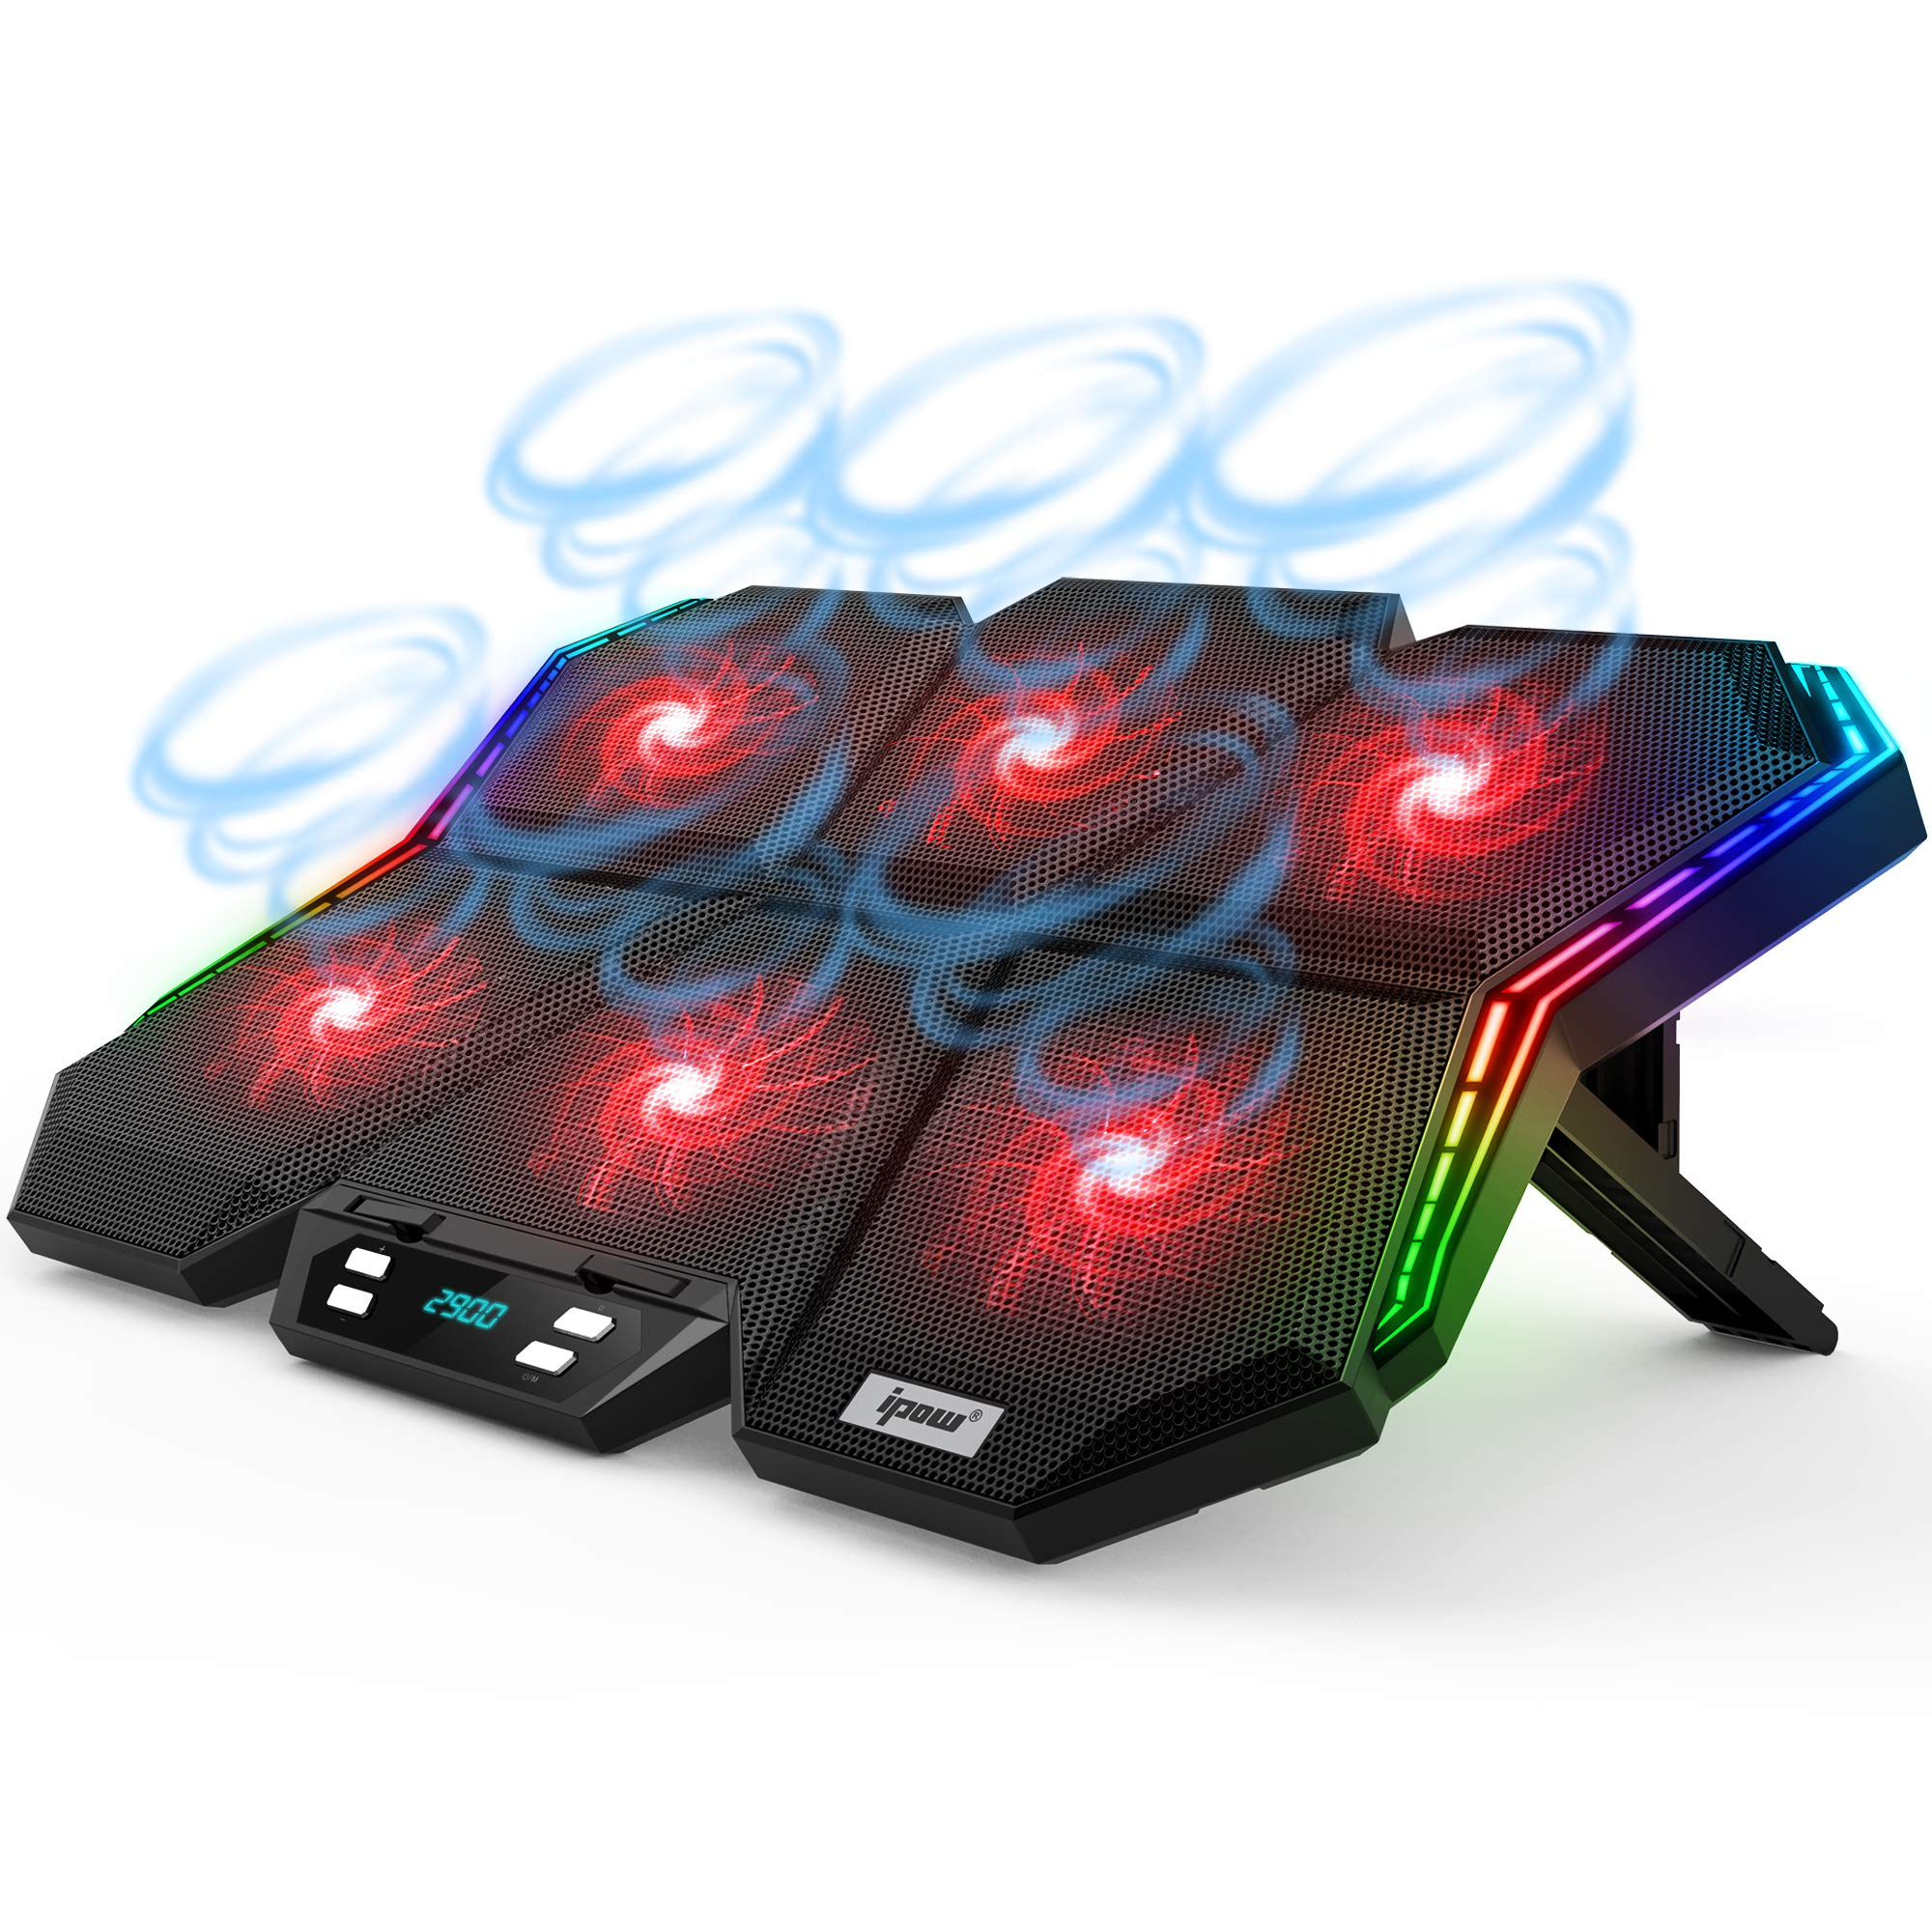 IPOW 12-Mode RGB Laptop Cooling Pad LED Screen Gaming Laptop Cooler with 6 High-Speed Adjustable Fans, 7 Heights Stand, 2 USB Ports, Compatible up to 17'' Laptop & PS4